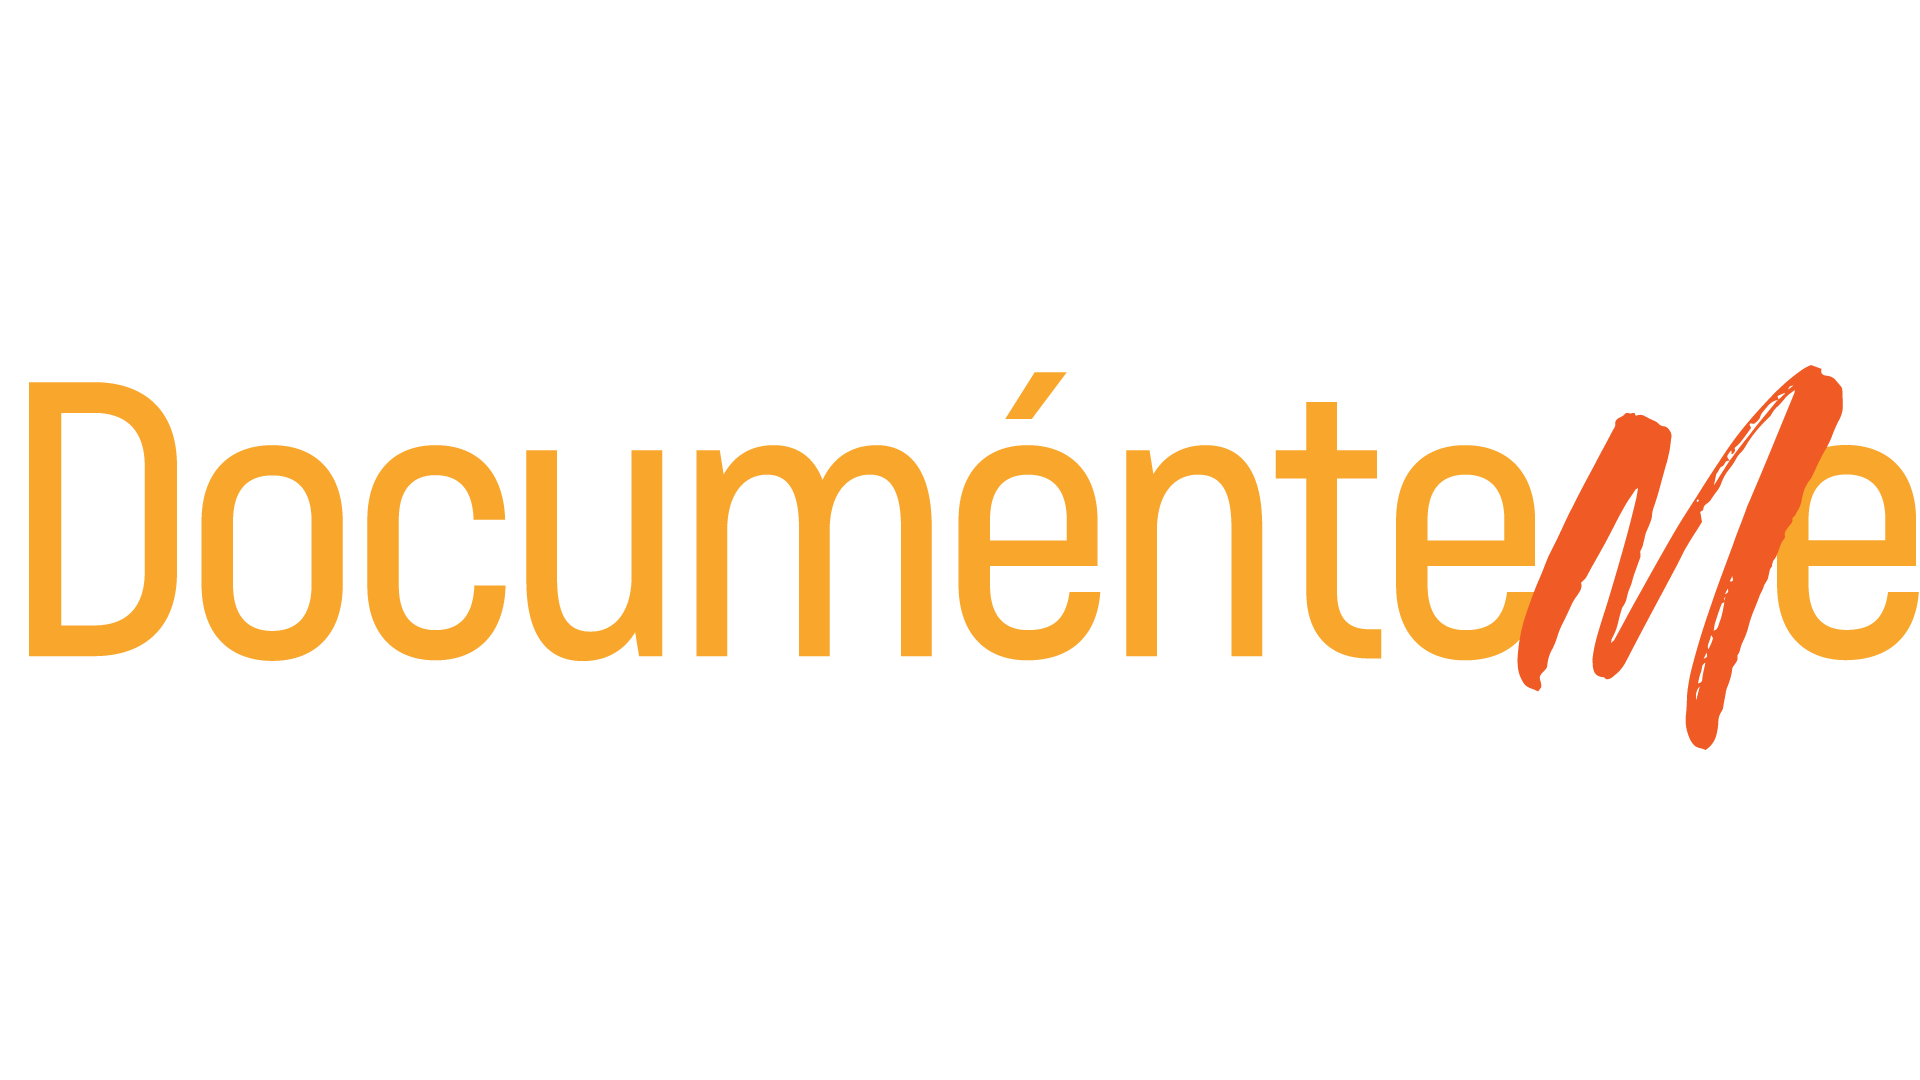 SOFTWARE PARA FACTURACIÓN ELECTRÓNICA DOCUMENTEME - MENTUM